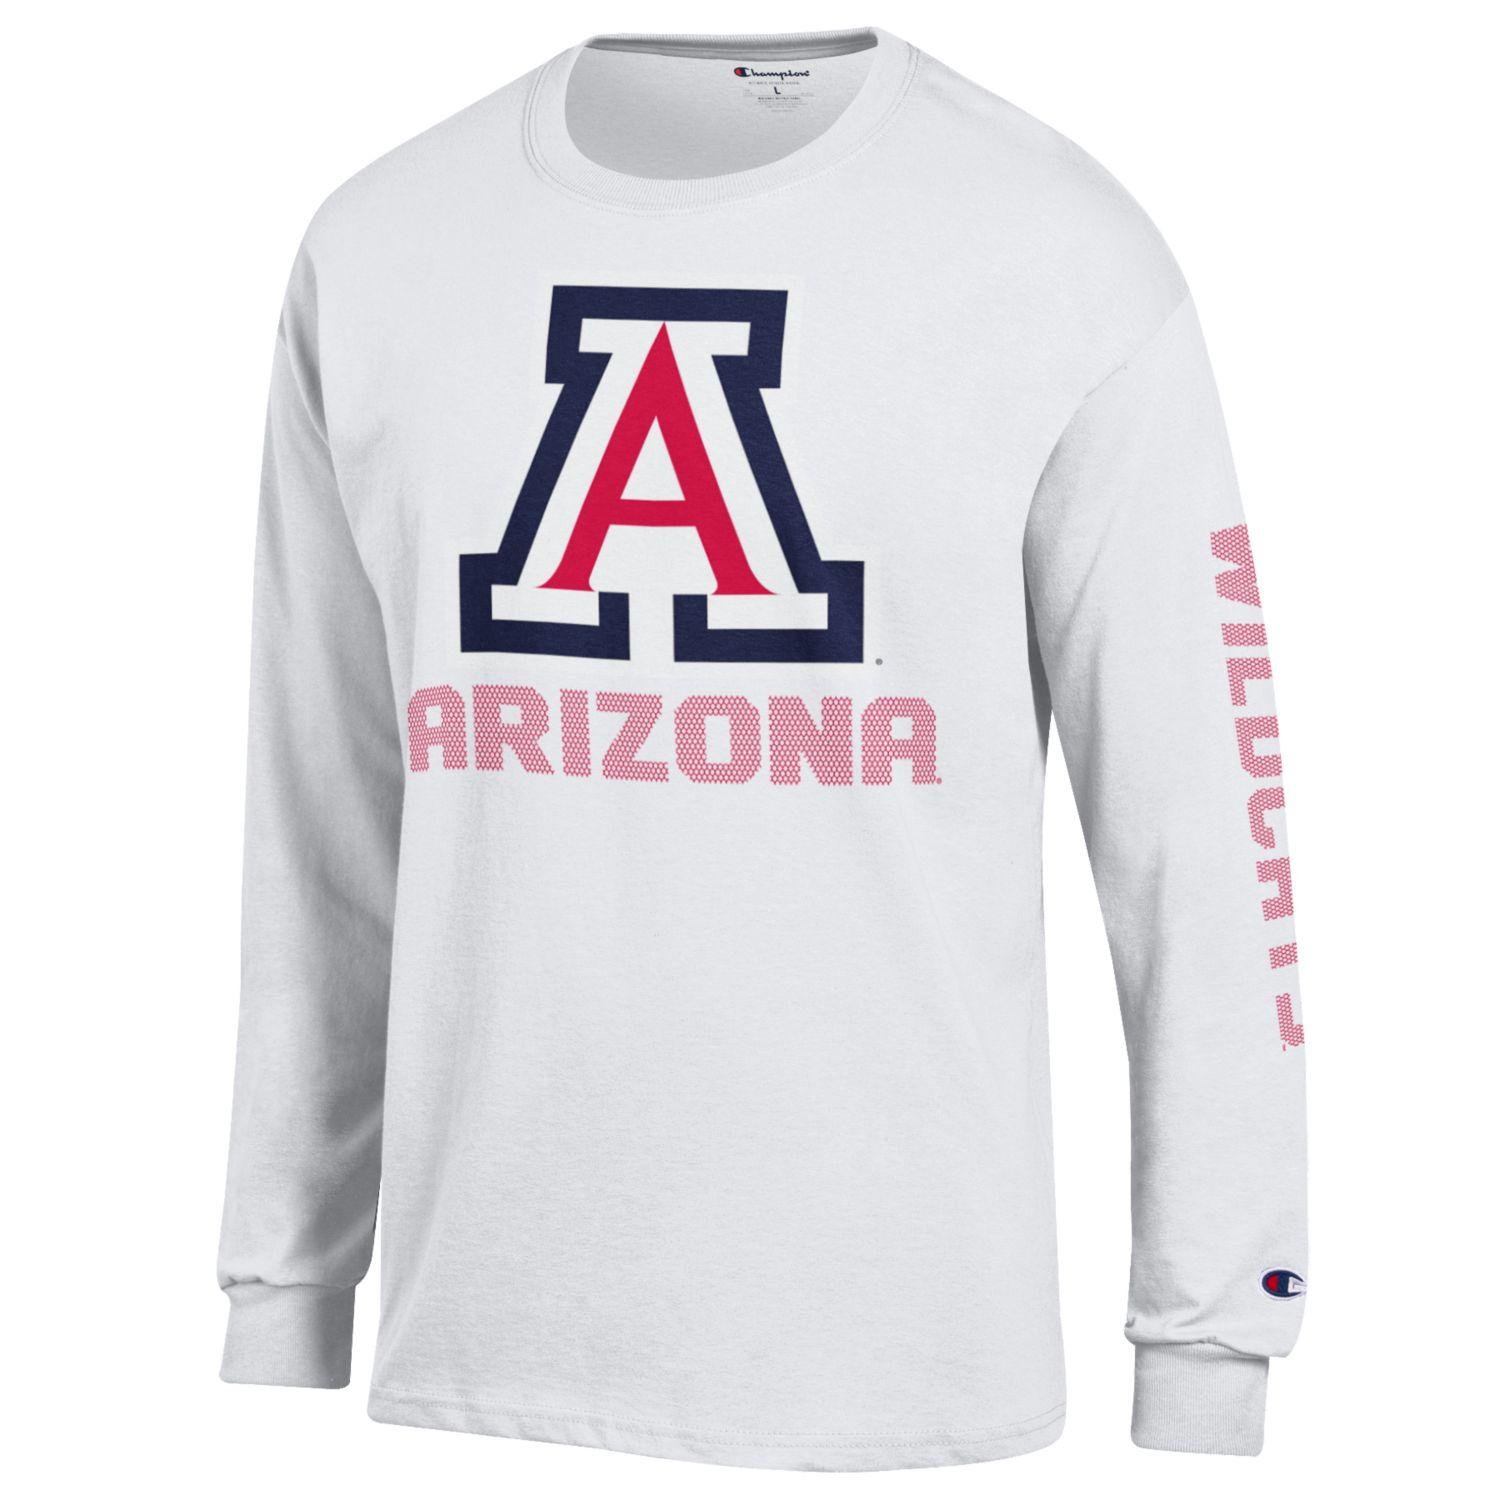 fba2b5181 Champion: Arizona Wildcats Long Sleve Jersey Tee - White